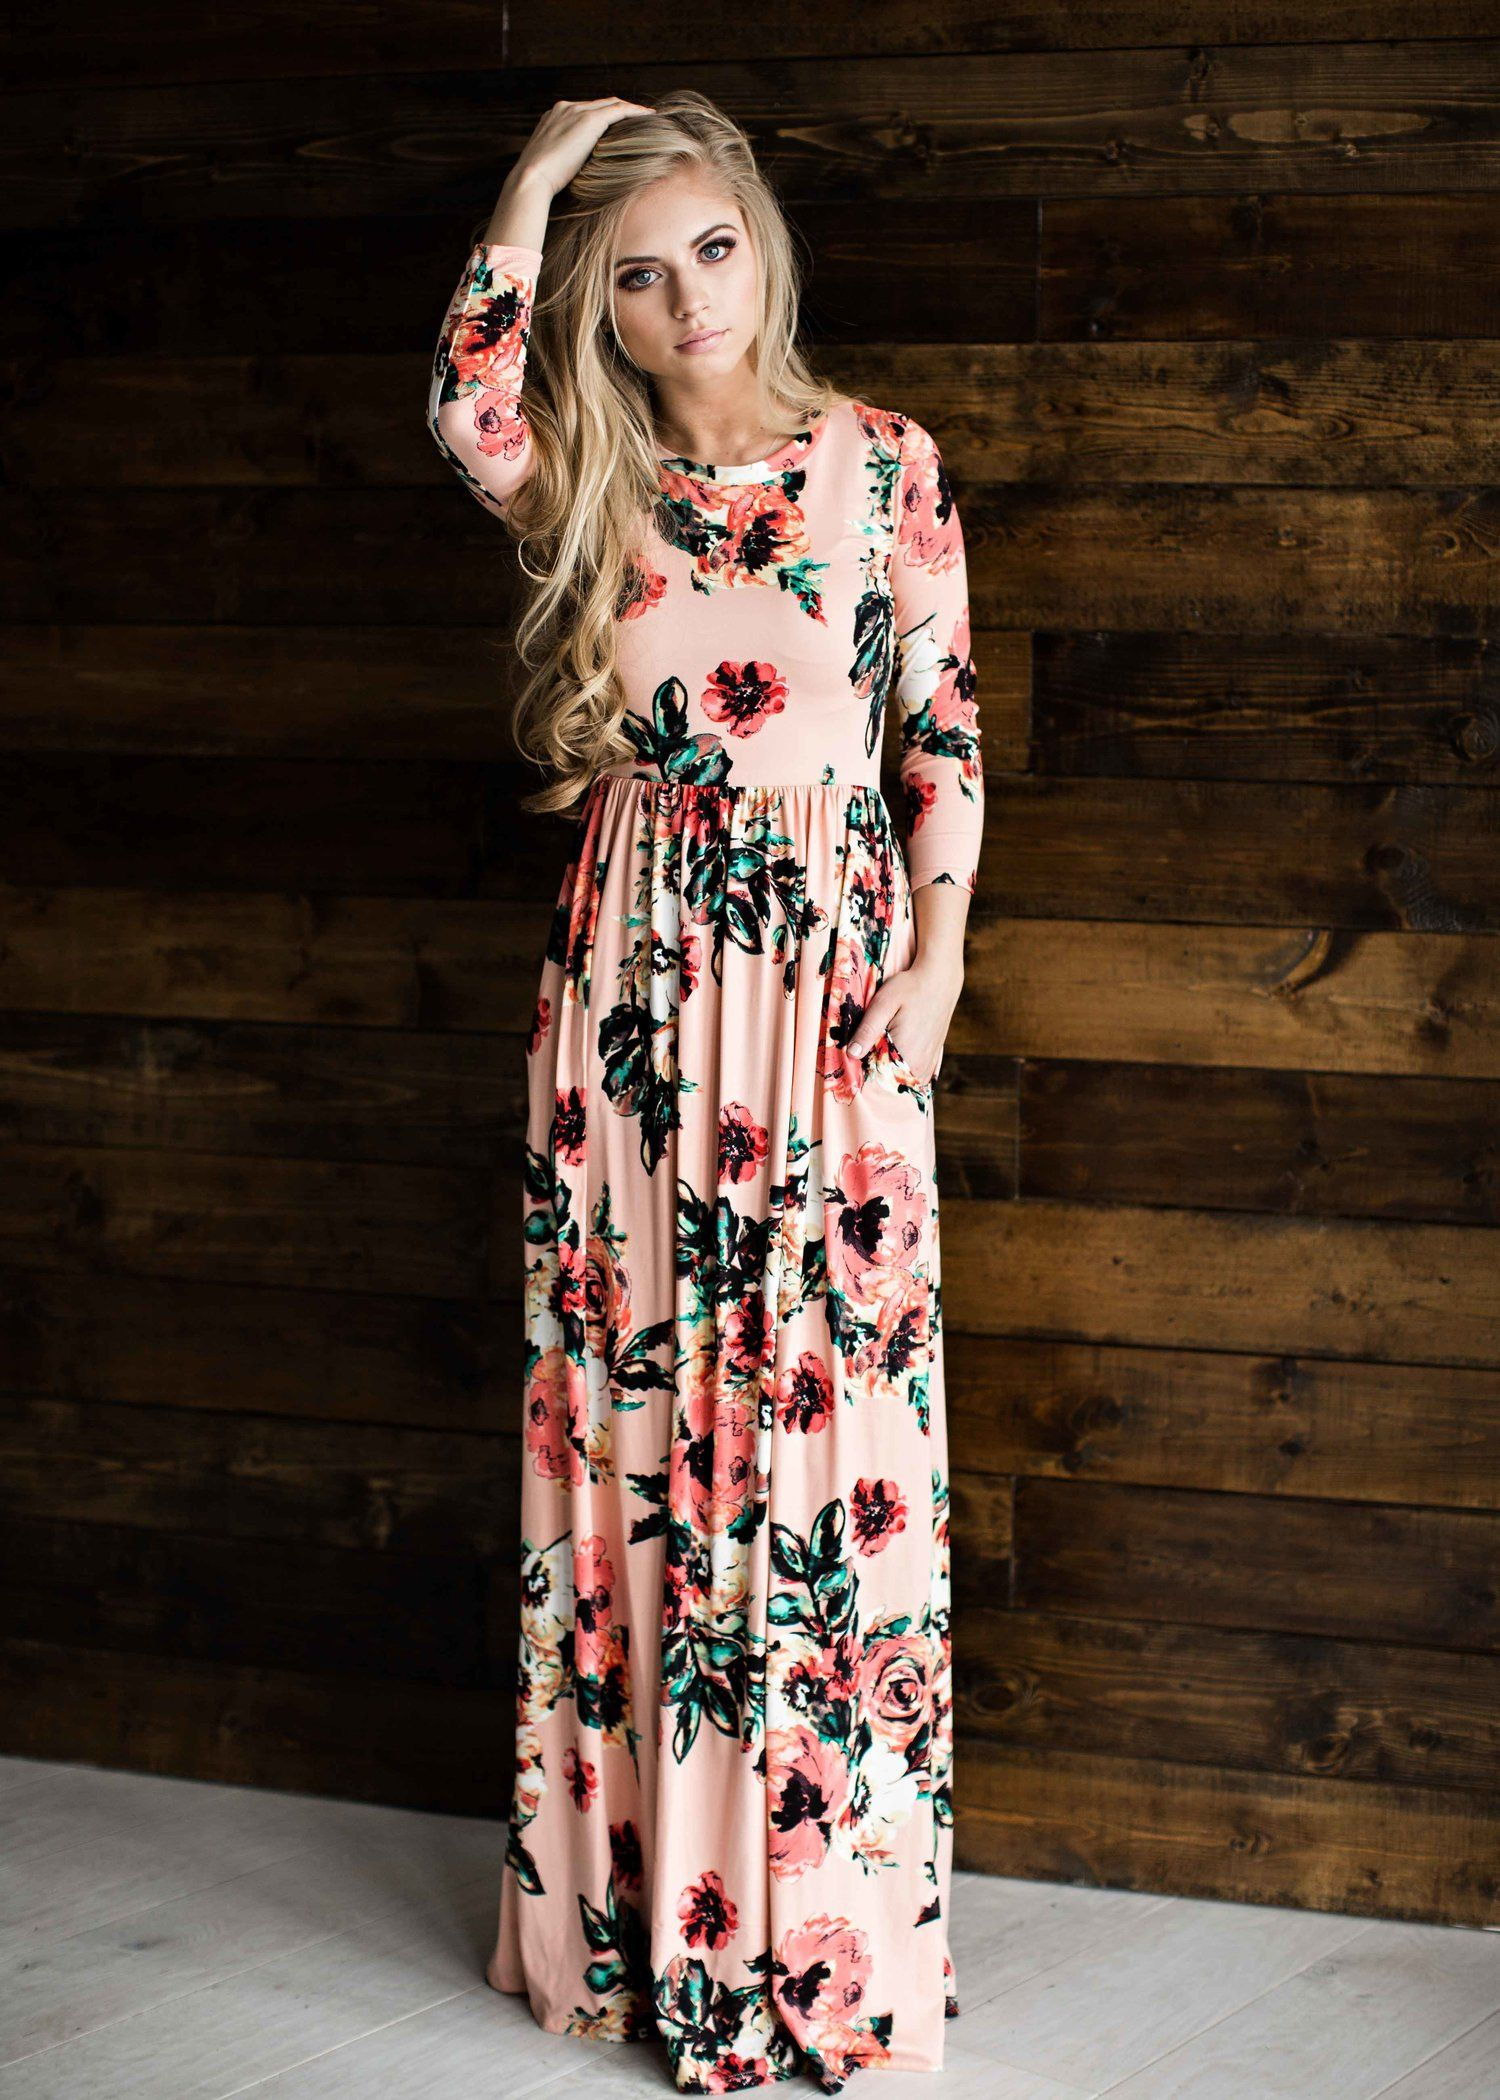 Floral dress floral easter dress blonde hair fashion style